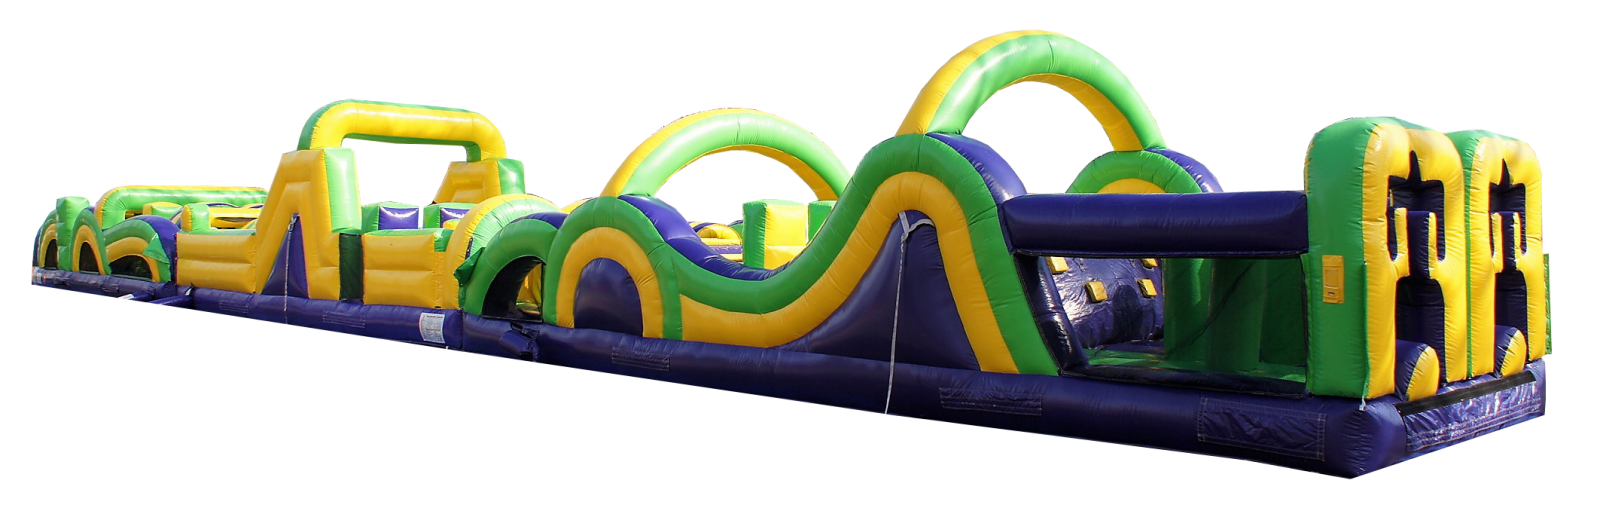 big obstacle course rental Nashville Tn jumping hearts party rentals